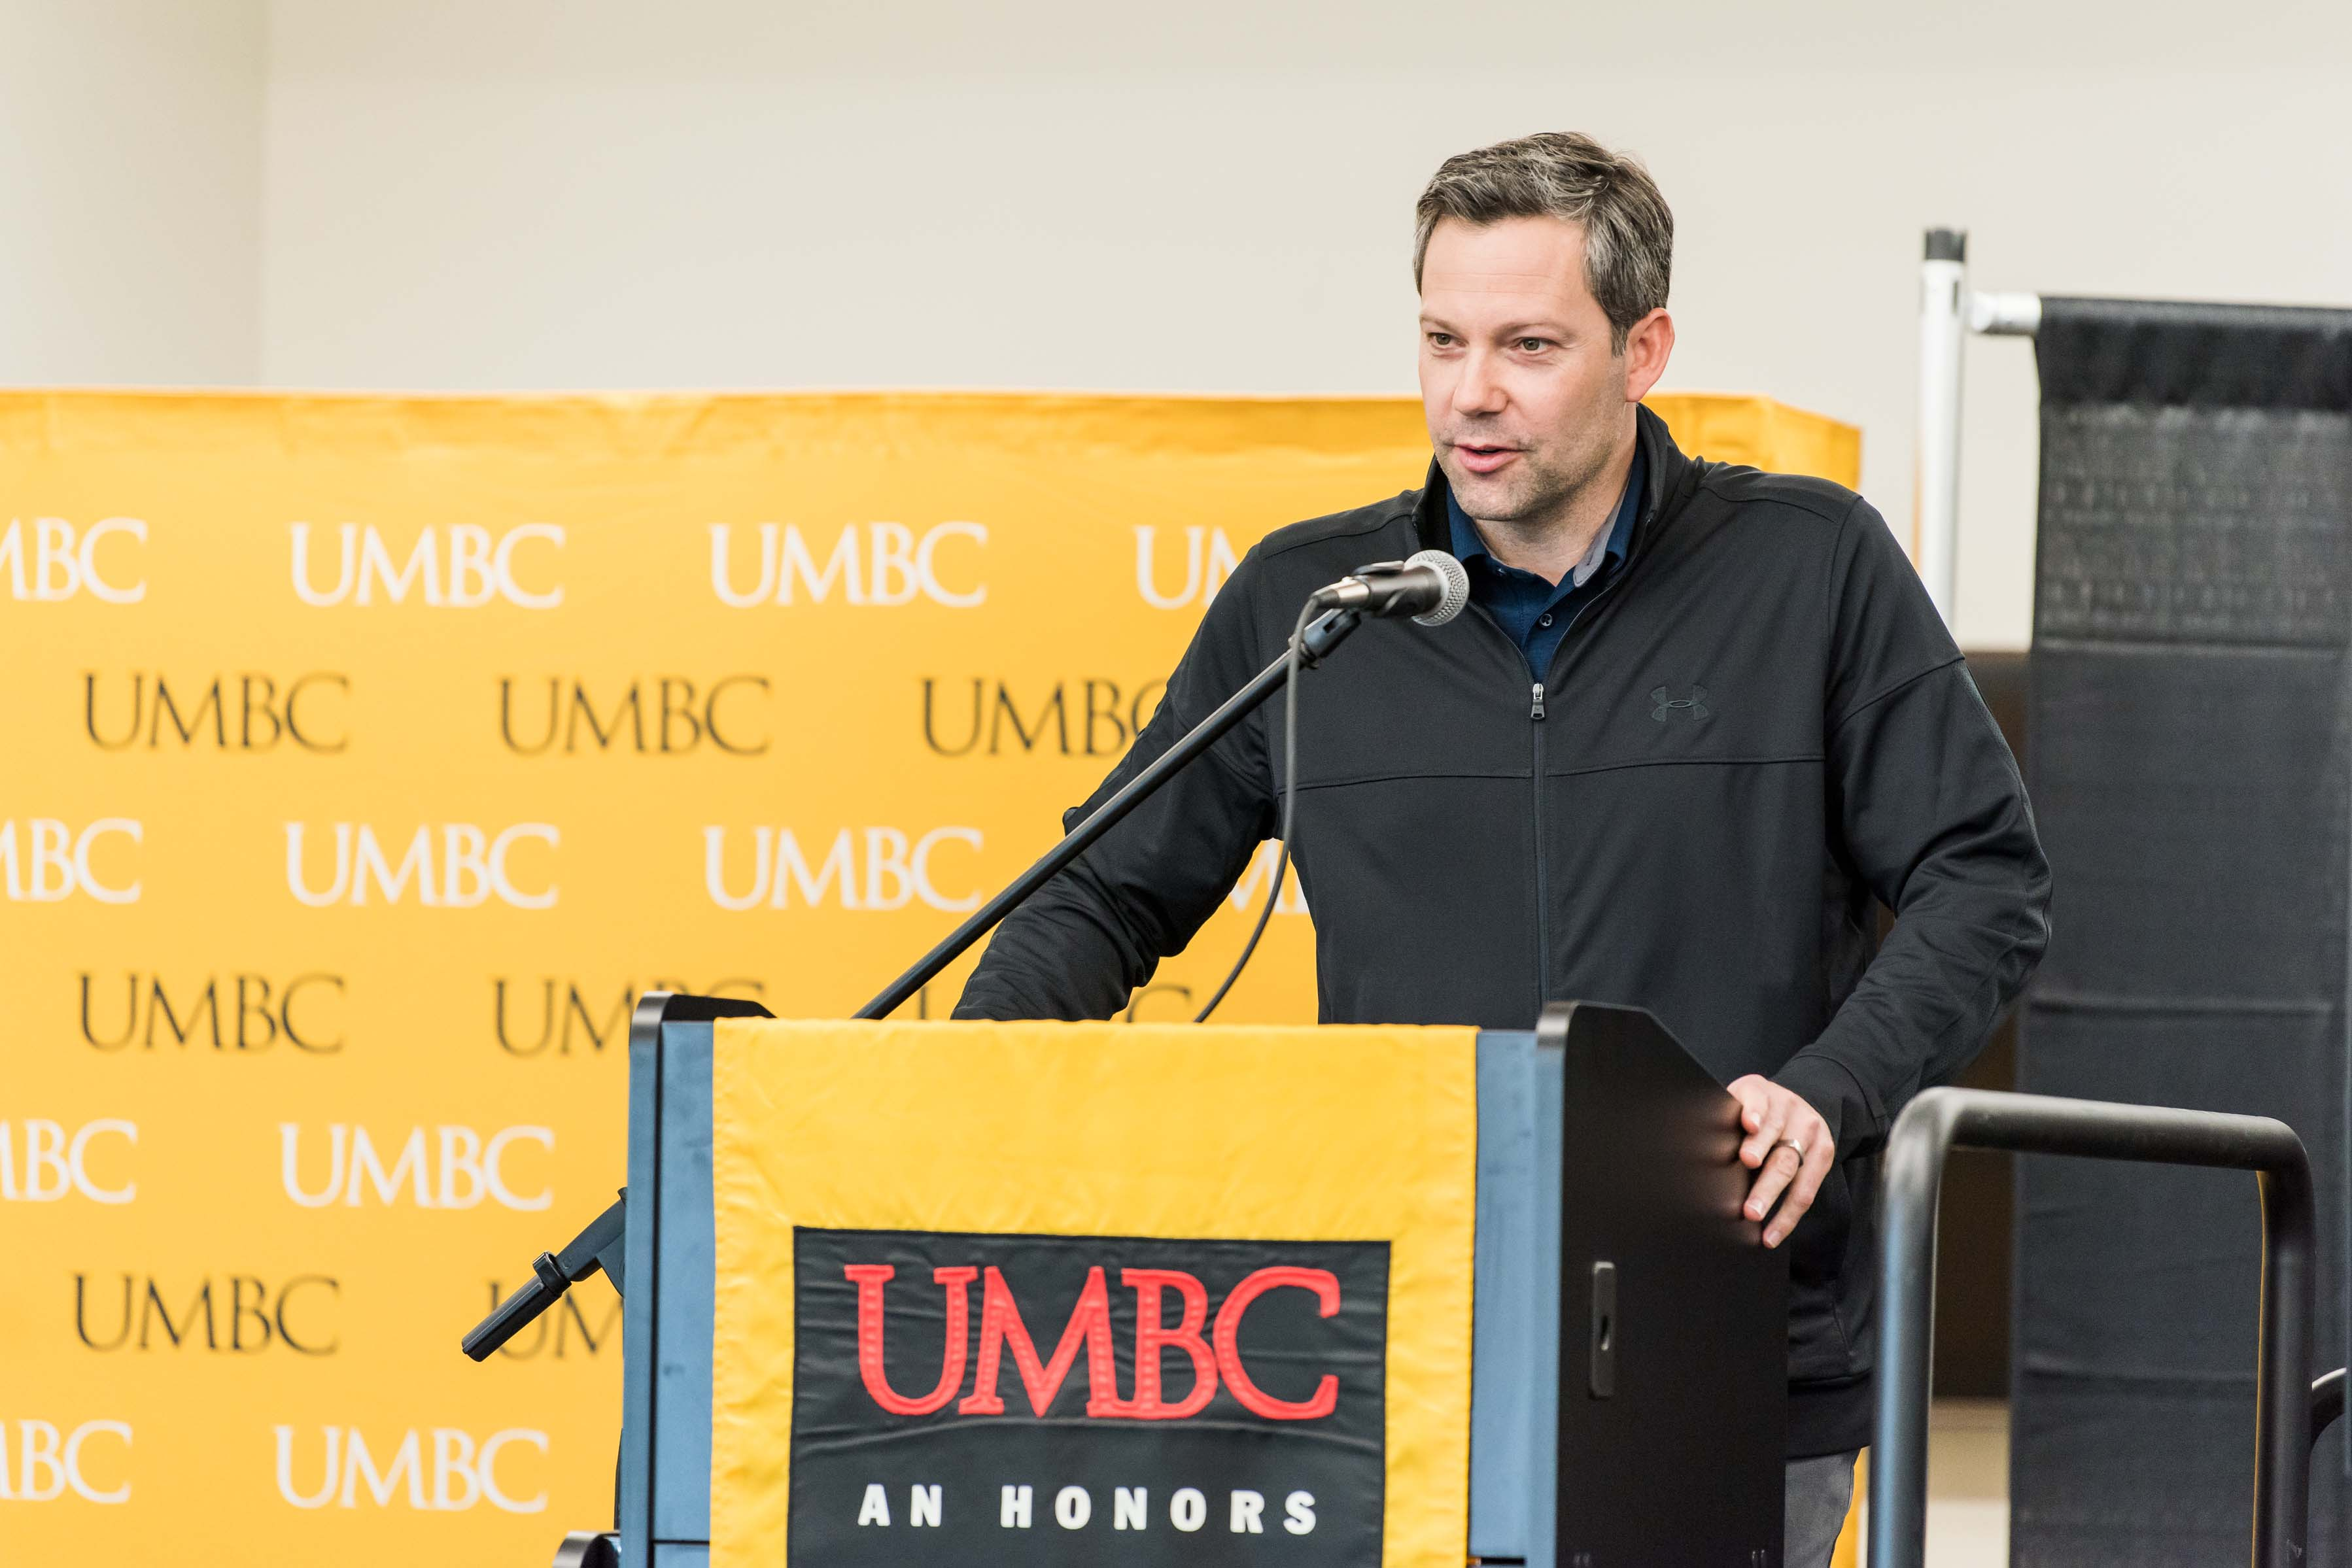 UMBC men's basketball coach gives speech at Wisdom Institute lunch